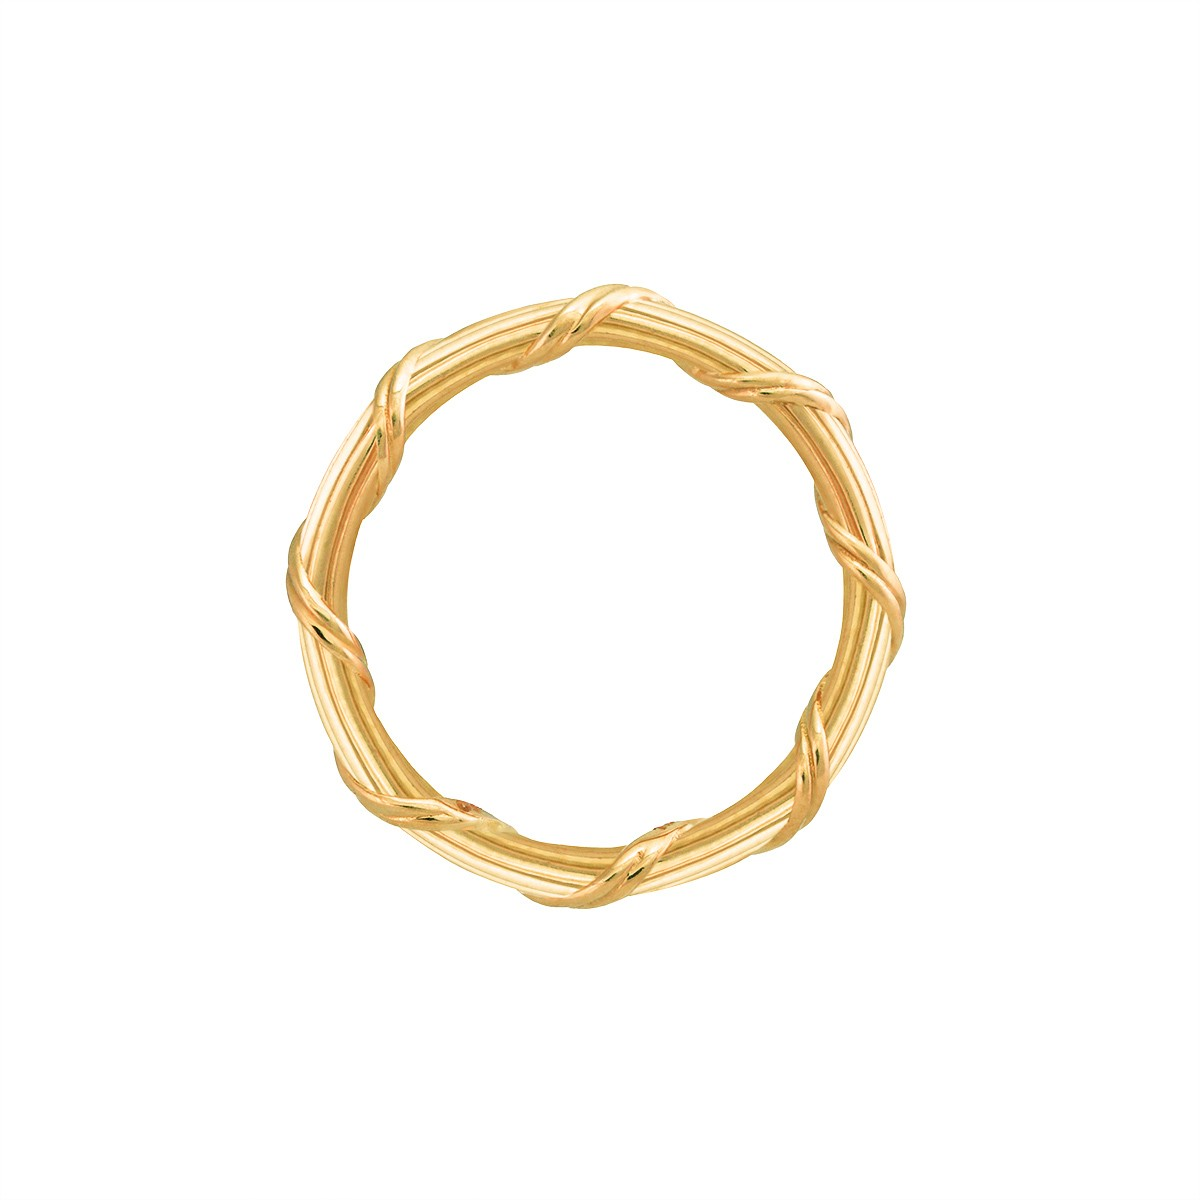 Heritage Band Ring in 18K yellow gold 2 mm